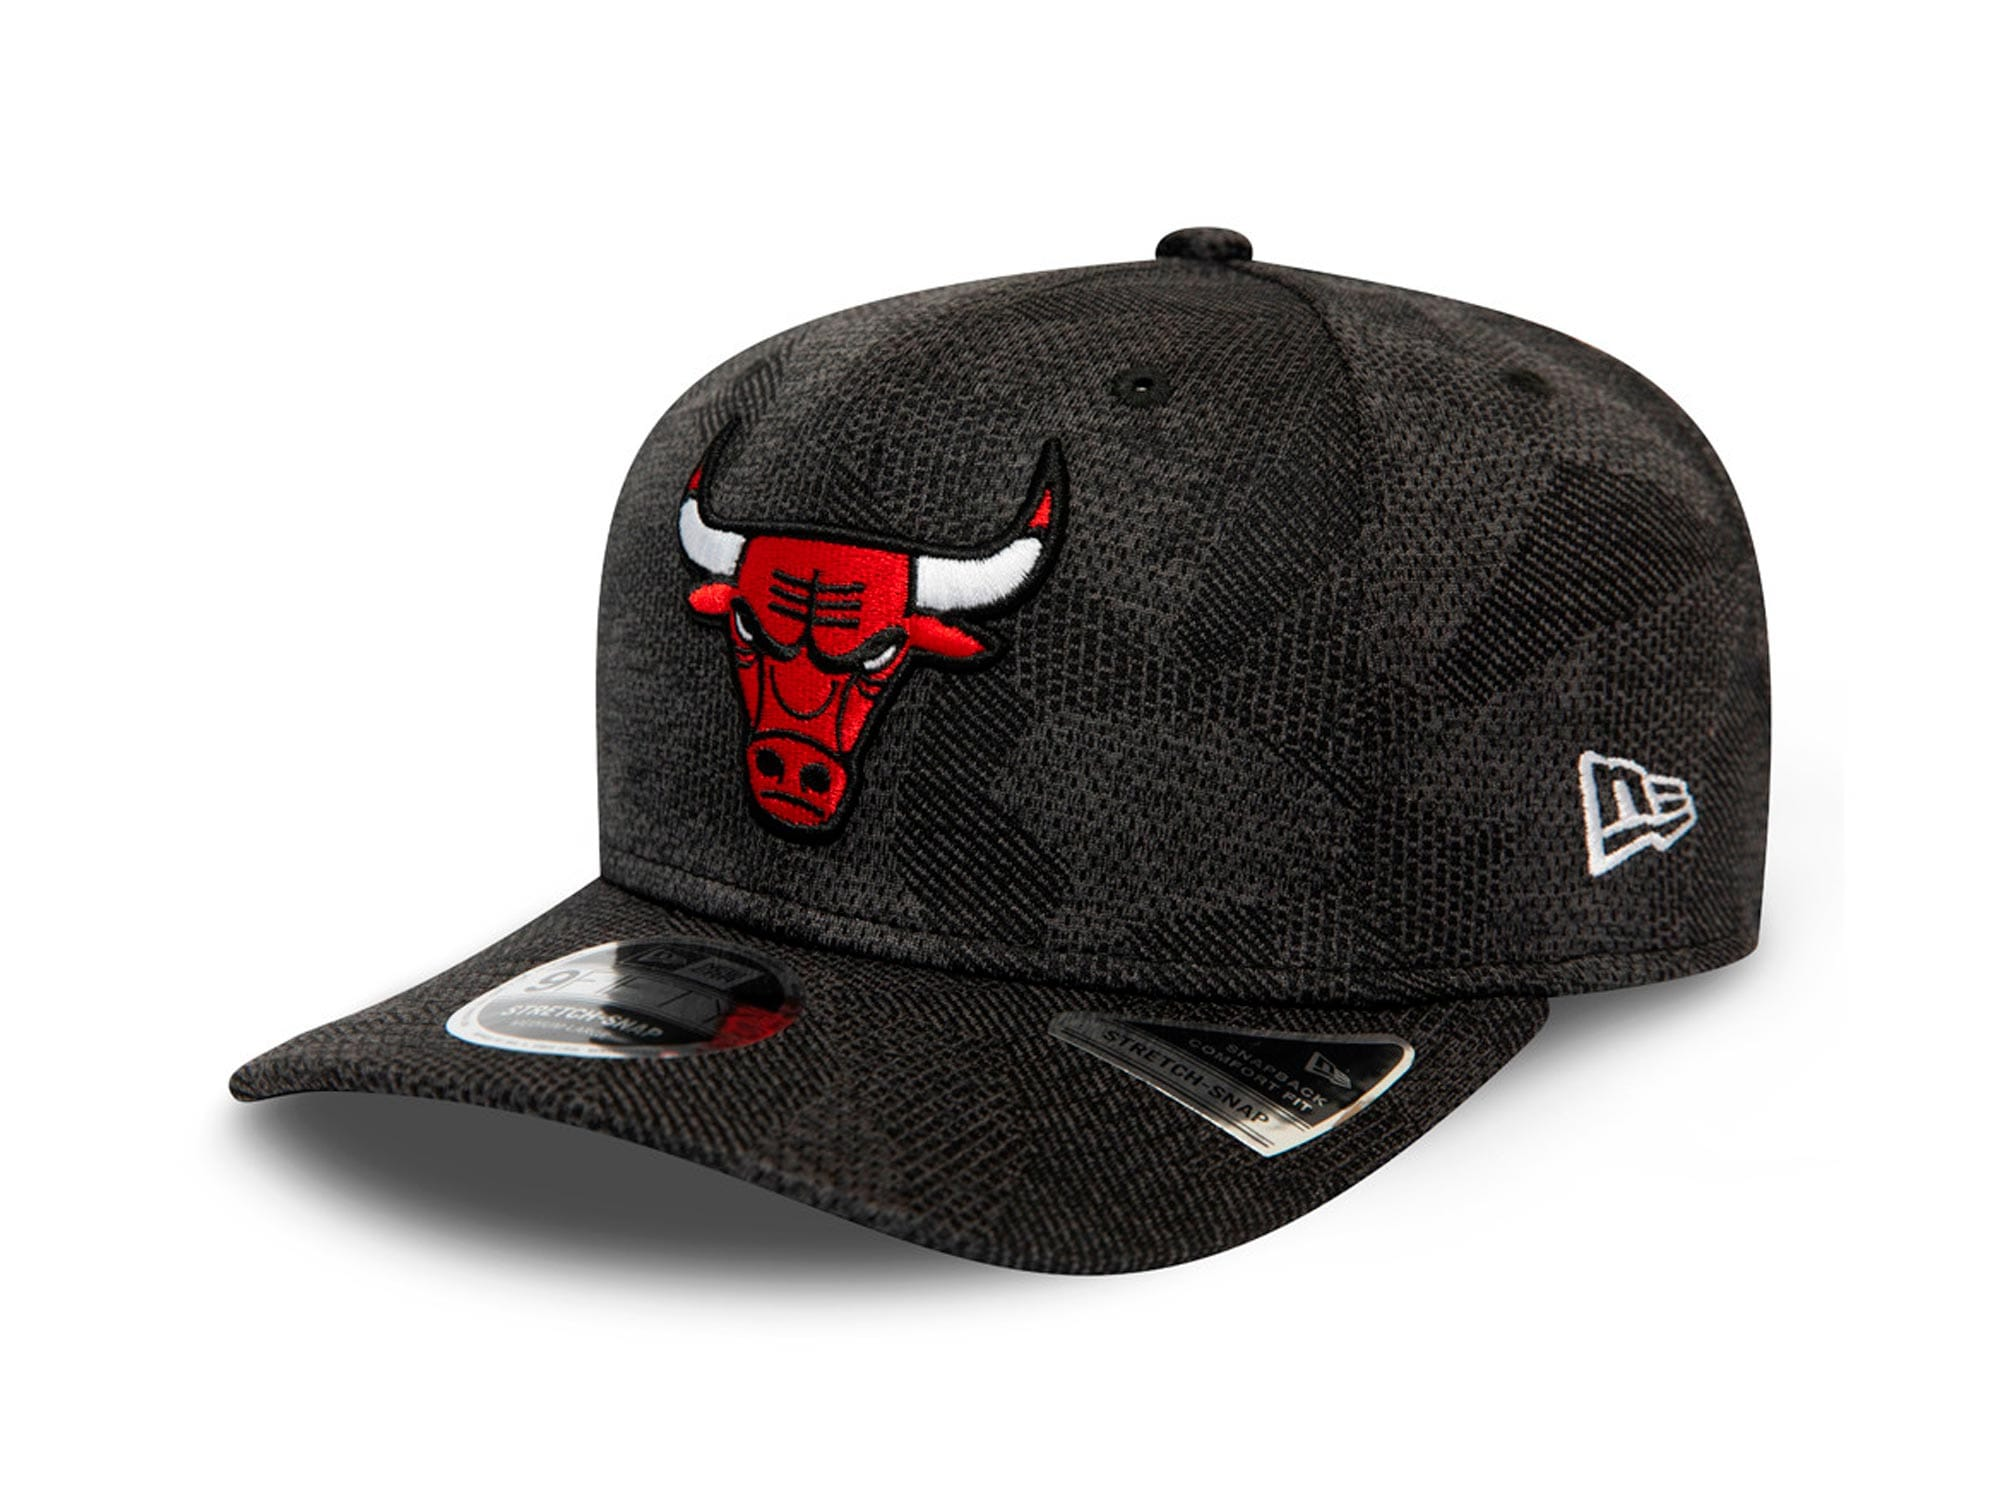 Jockey New Era Nba 950 Stretch Snap Chicago Bulls Hombre Negro